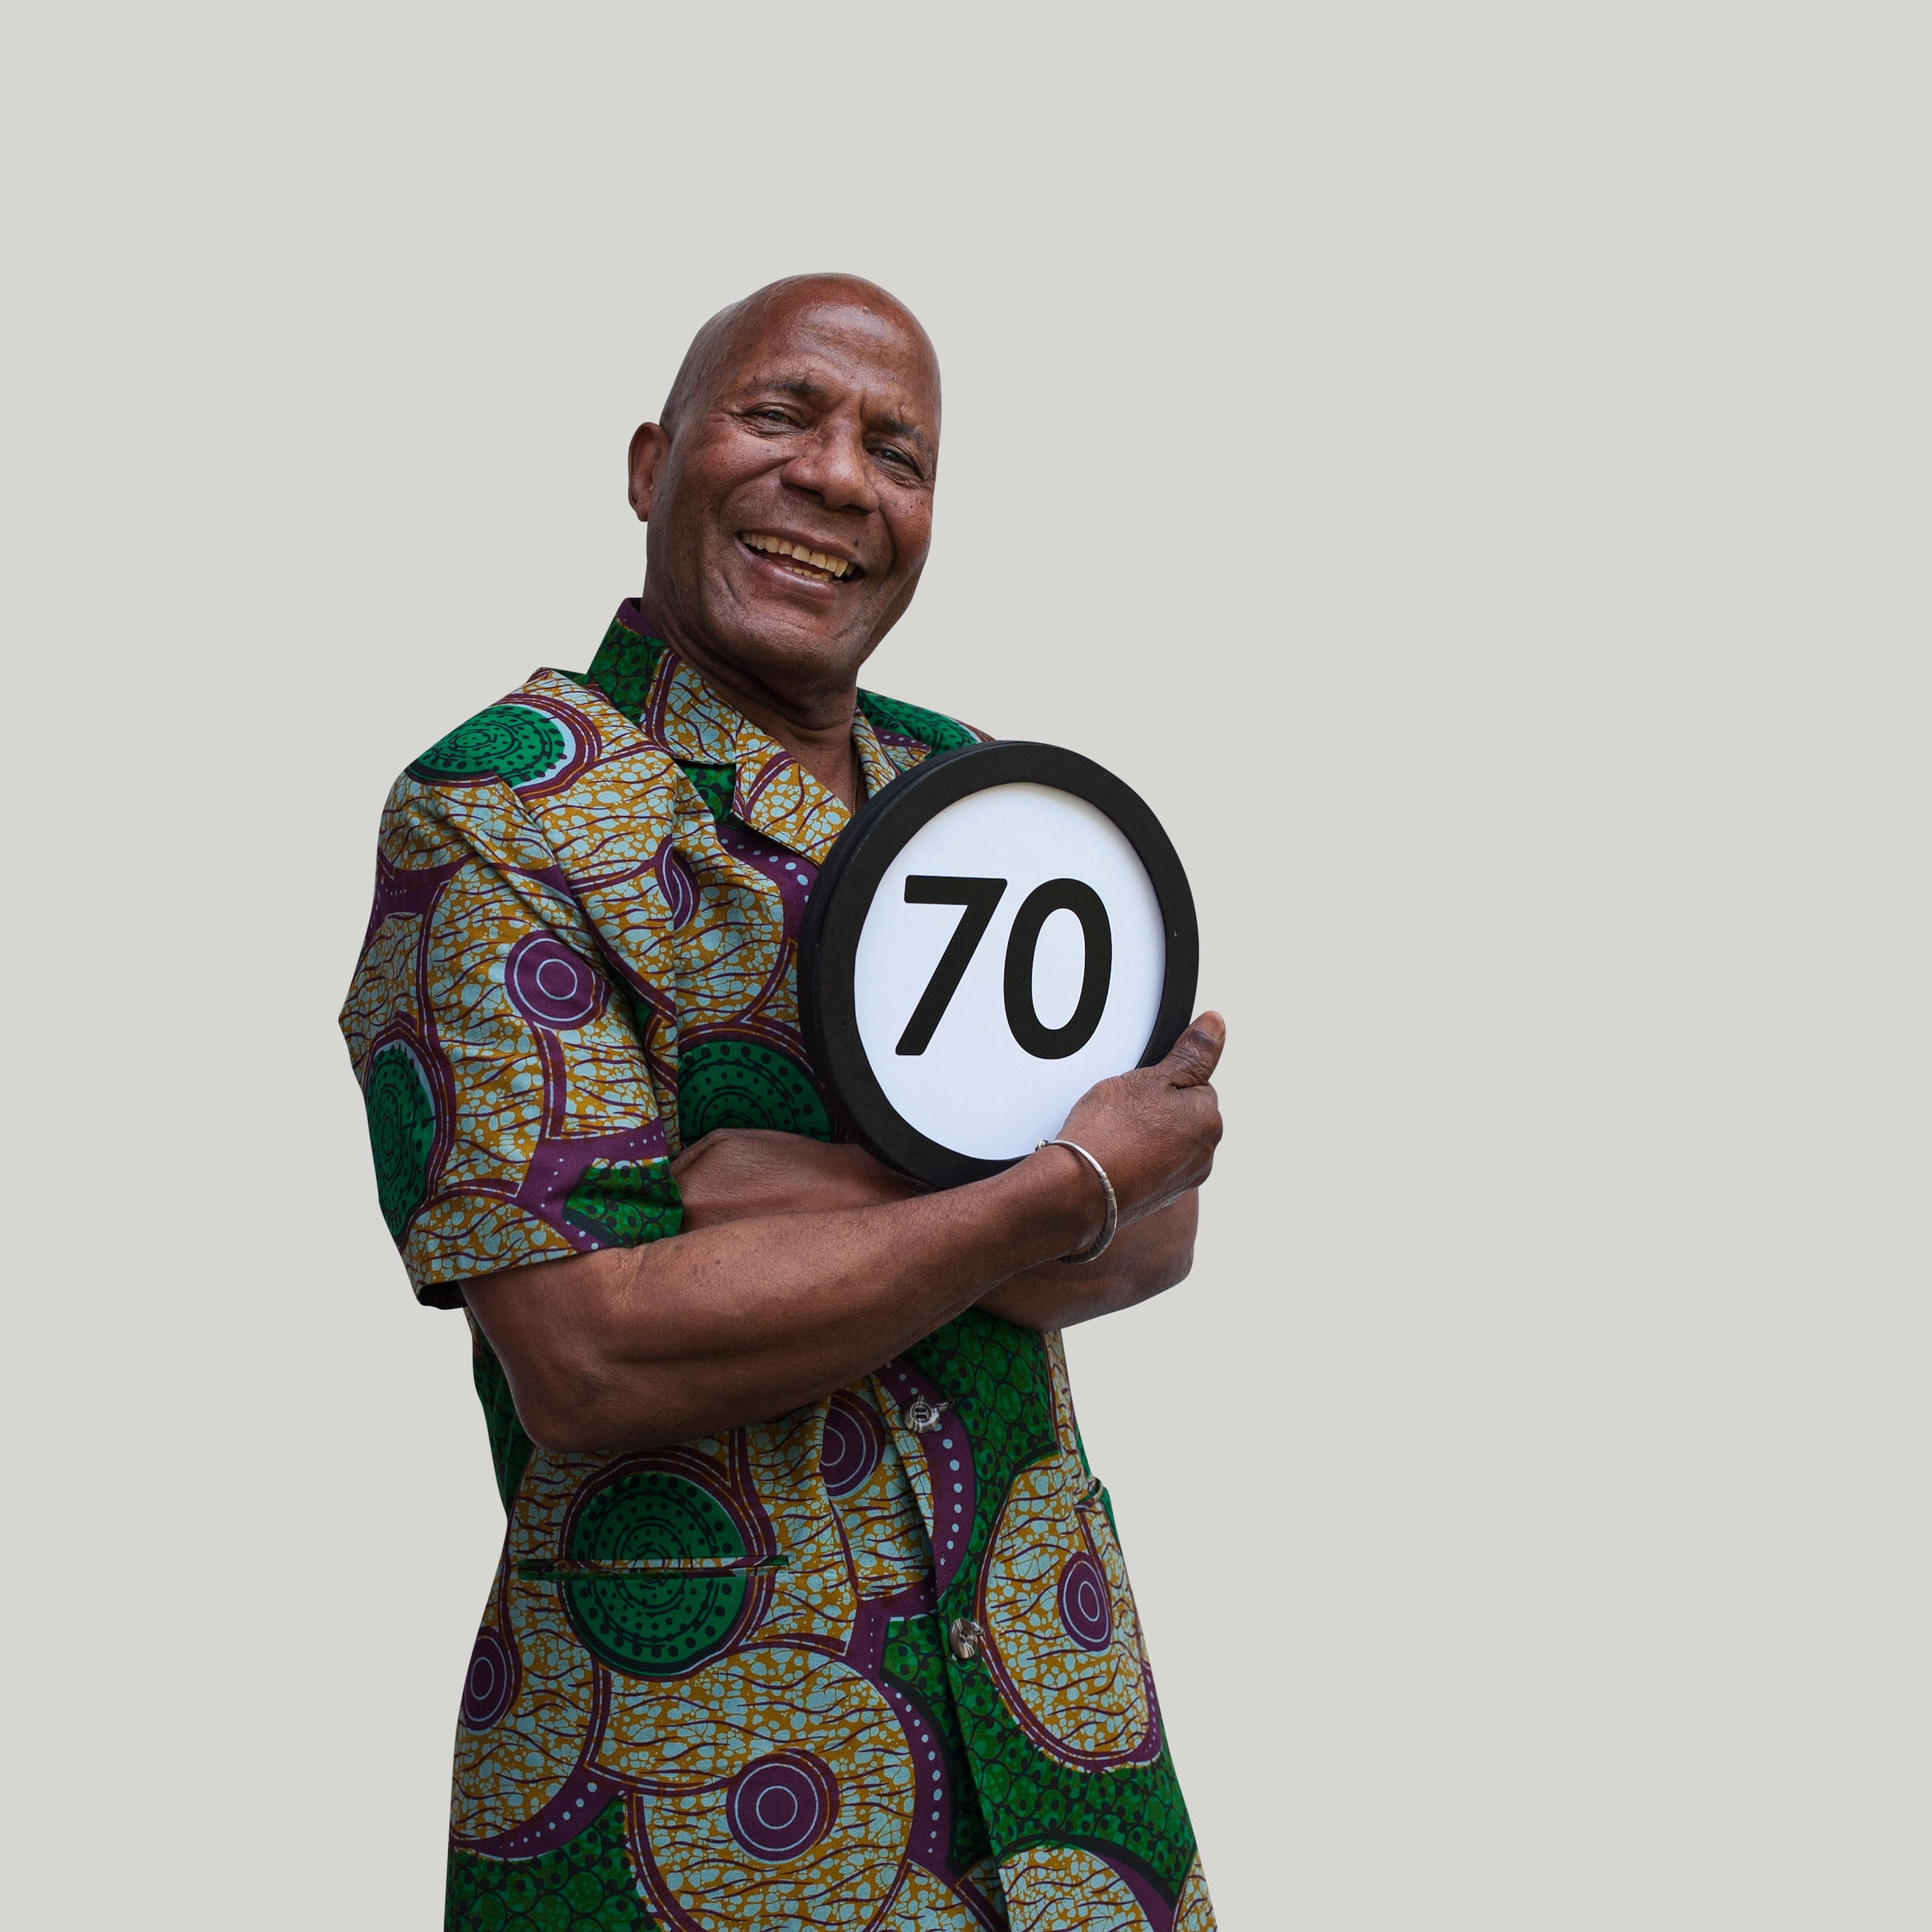 70 your old man wears a colorful summer shirt and smiles broadly into the lens. His arms are folded tightly to his chest and with one hand holds a token with the number 70 on it. This digital image is part of the 1 to Infinity portrait photography series by Danny Goldfield.